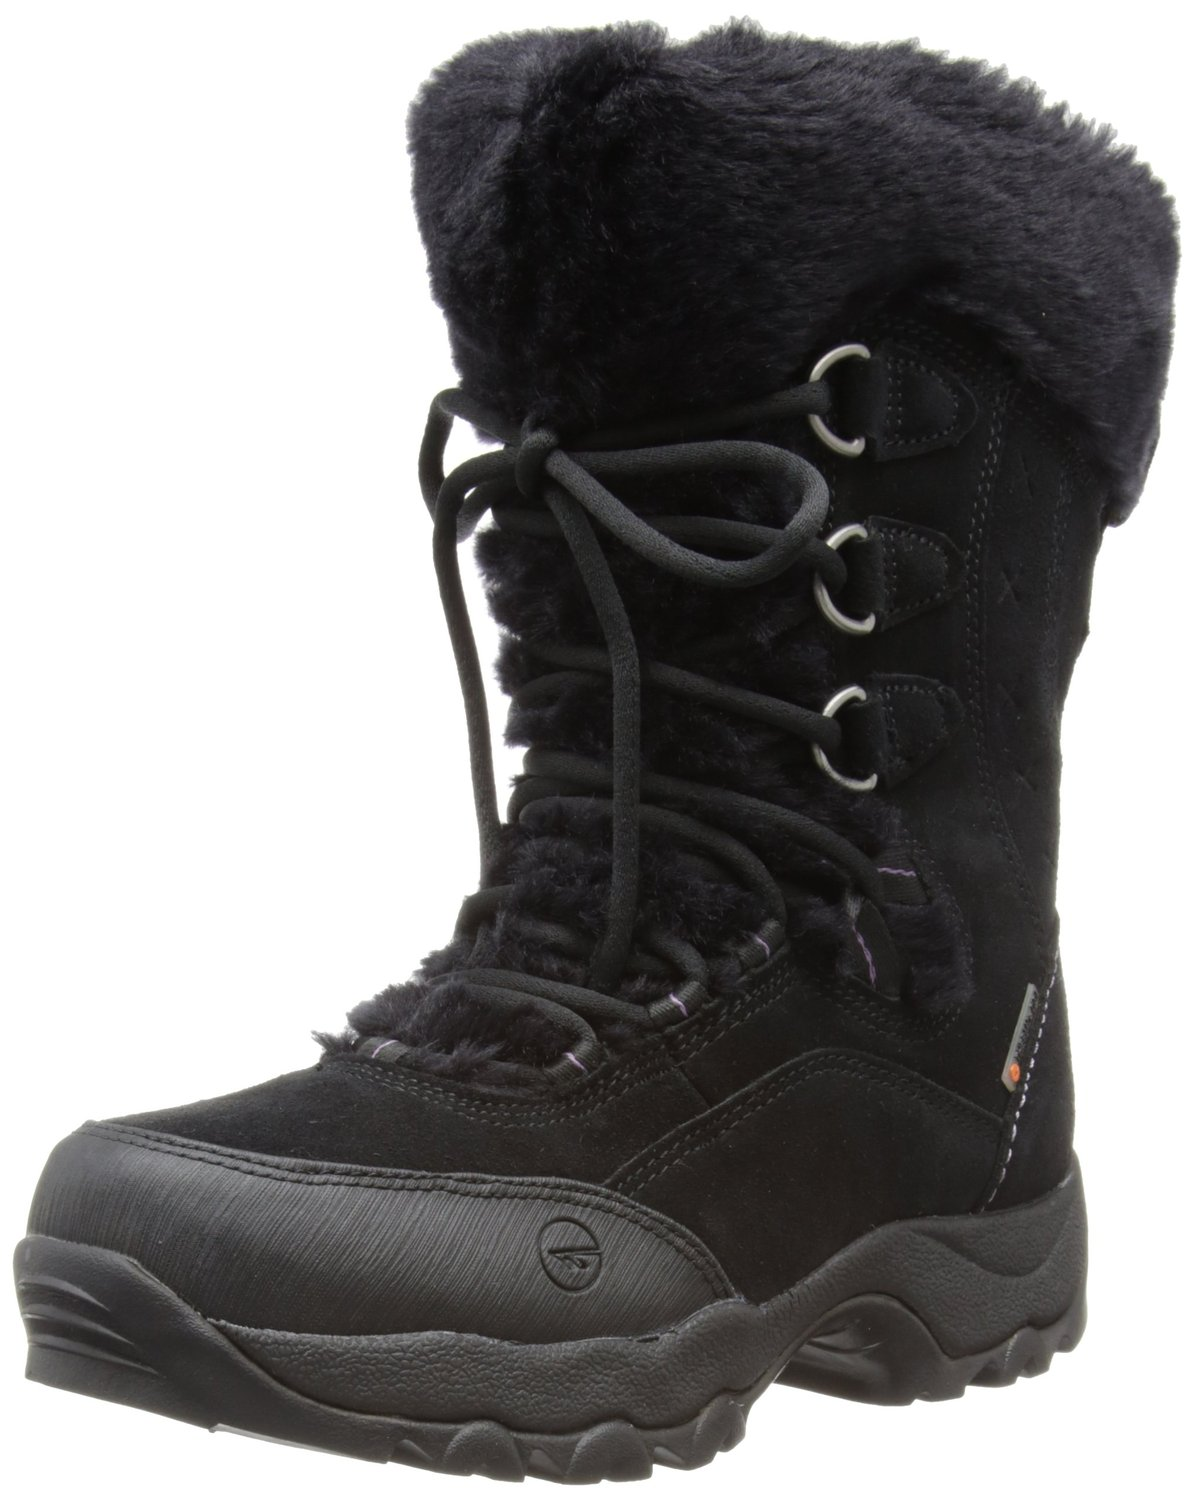 Tec womens st moritz 200 ii waterproof trekking and hiking boots o002856/021/01 black/clover 5 uk, 38 eu: amazon.co.uk: shoes & bags